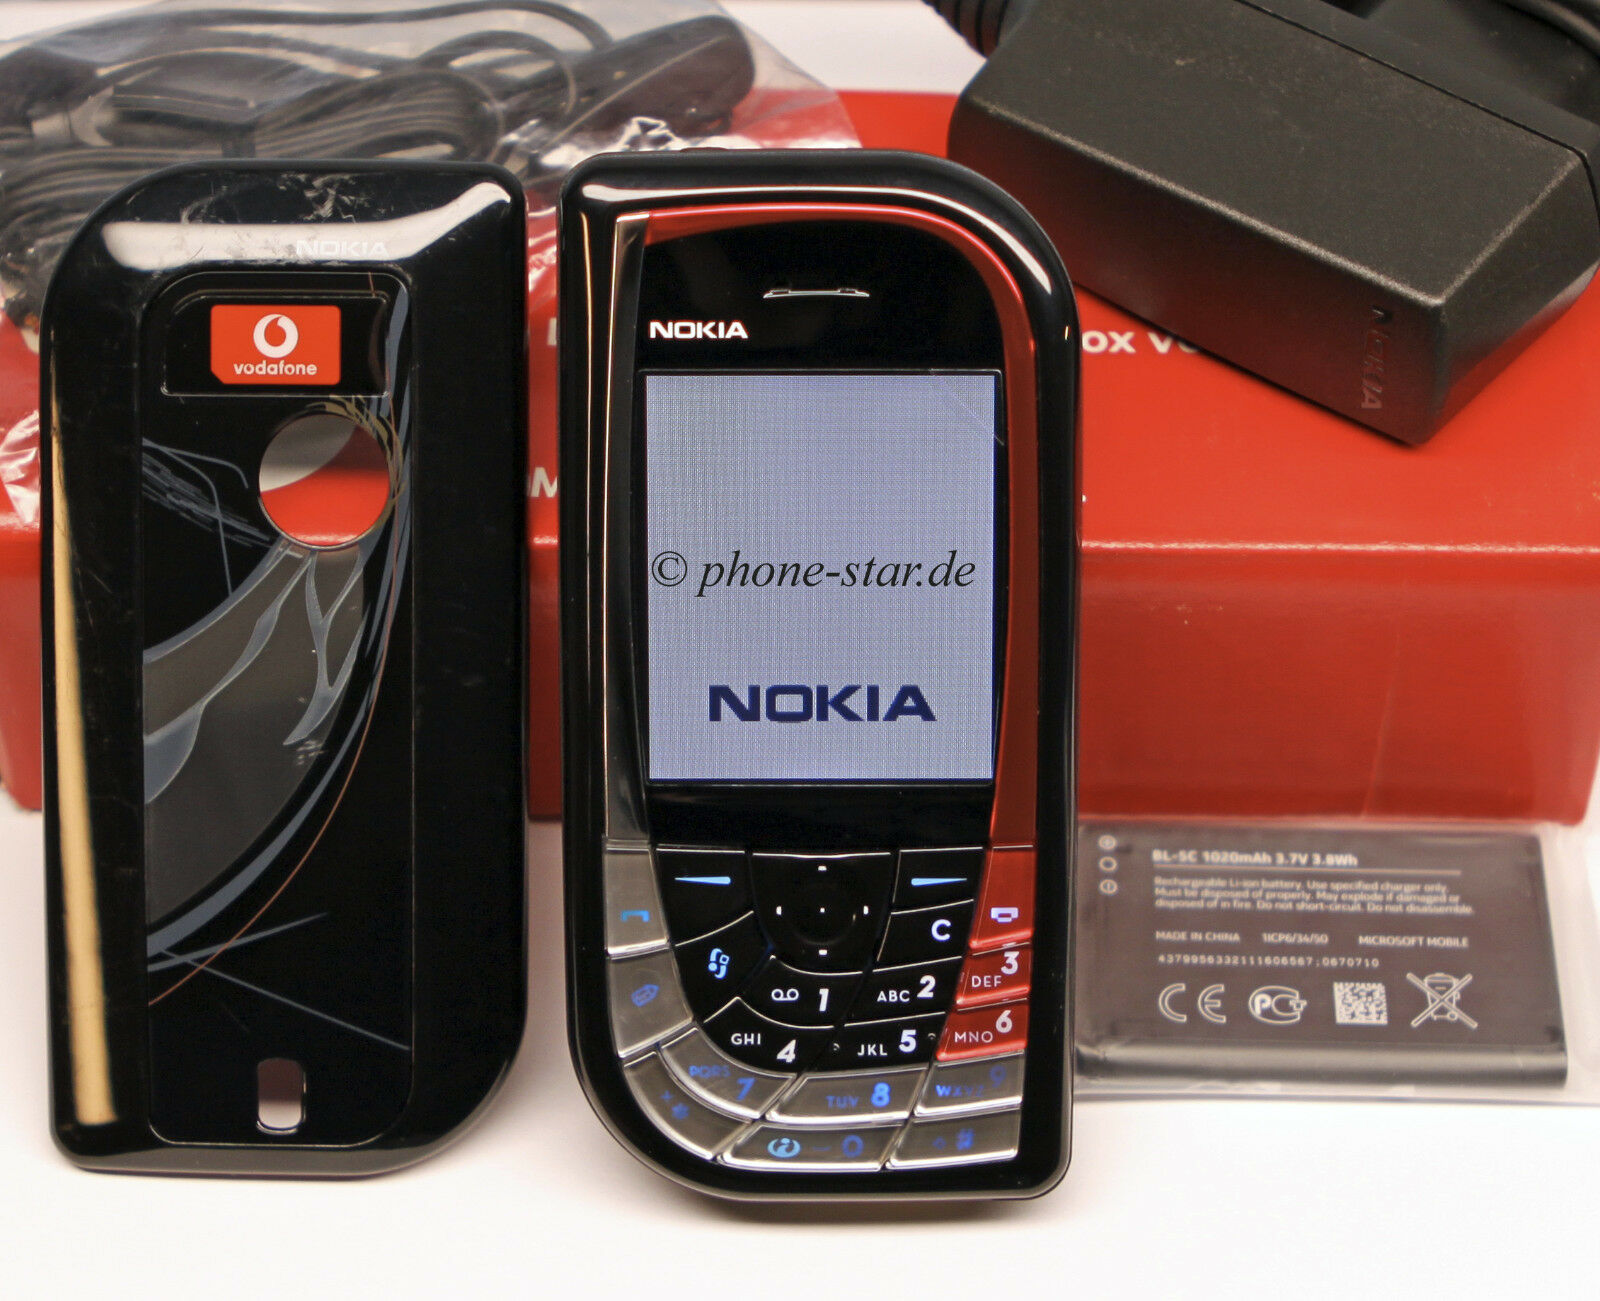 ORIGINAL NOKIA 7610 RH-51 DESIGN HANDY MOBILE PHONE BLUETOOTH KAMERA TRI-BAND